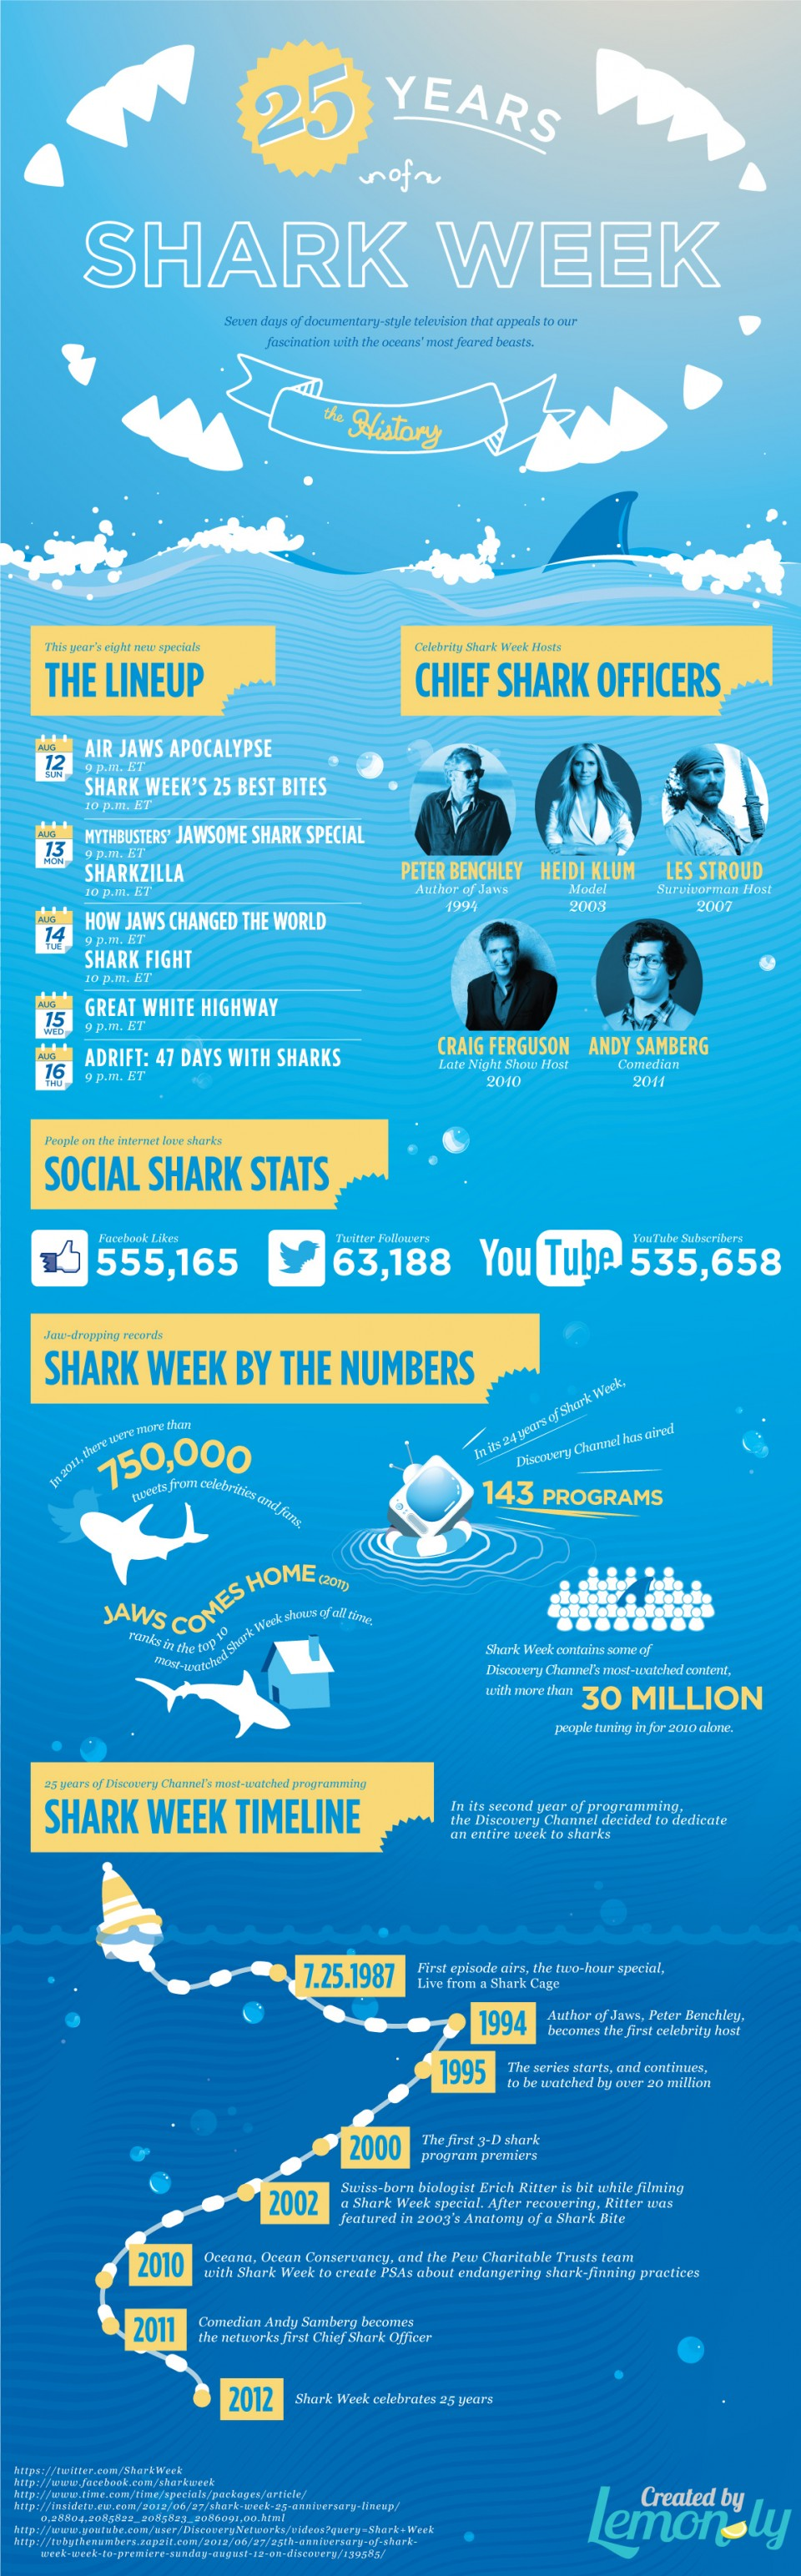 Shark Week Infographic ~ tpisolutionsink.com